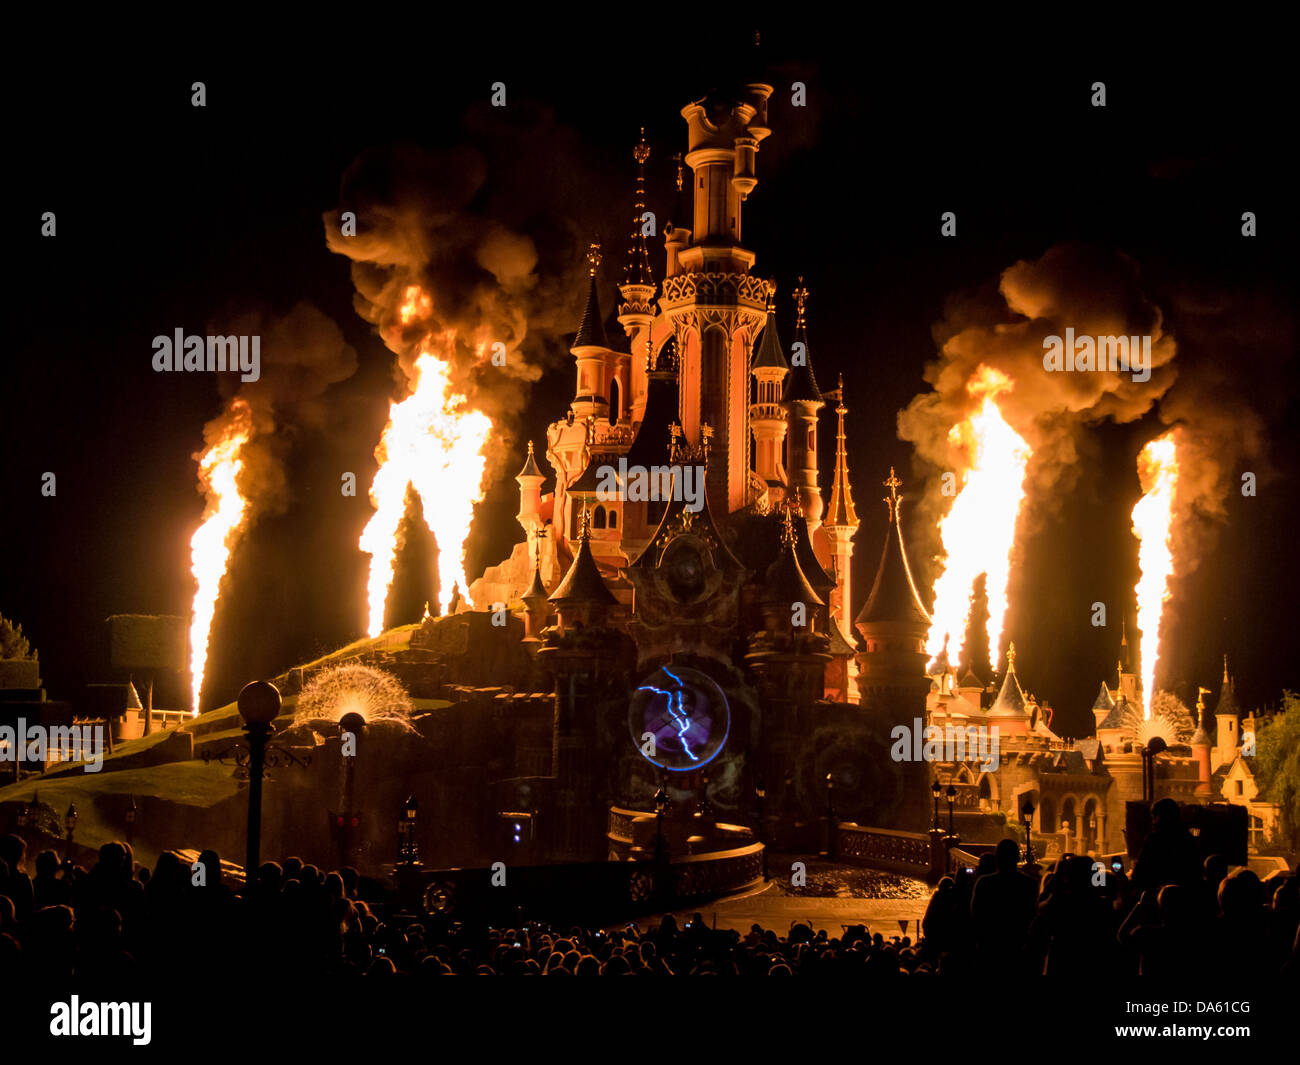 Flames rise up above Sleeping Beauty's castle at Disneyland Paris during the 20th anniversary Dreams show . - Stock Image